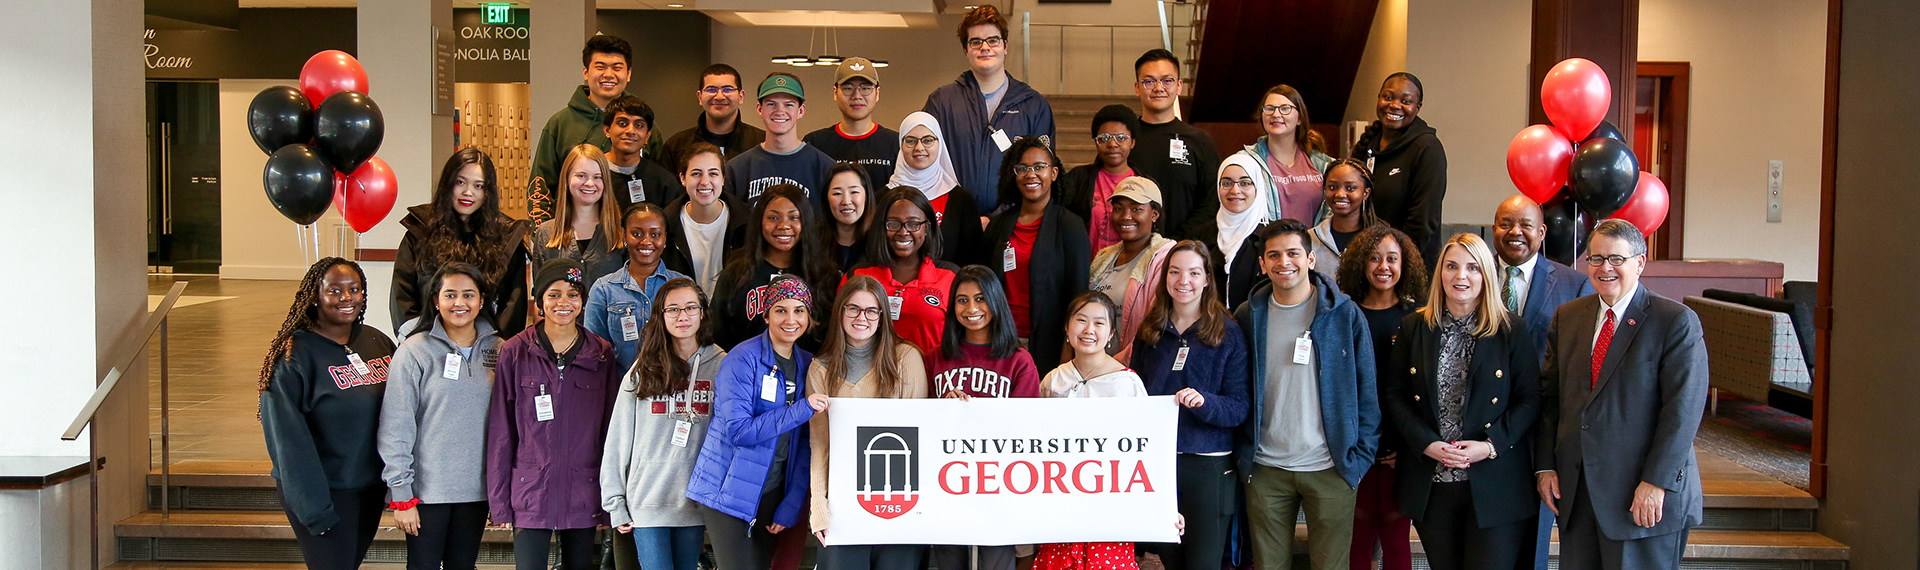 Students and UGA faculty pose for a picture in the Georgia Center to kick off the 2020 Student Tour of Georgia.